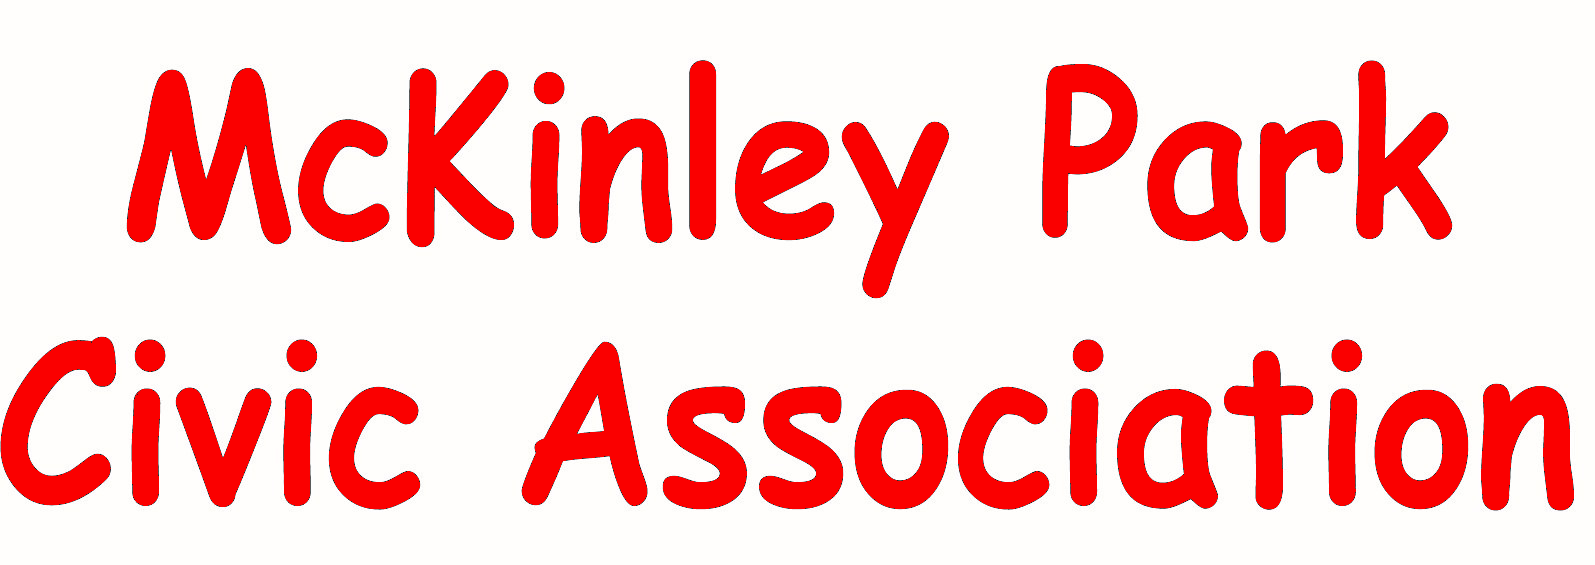 McKinley Park Civic Association